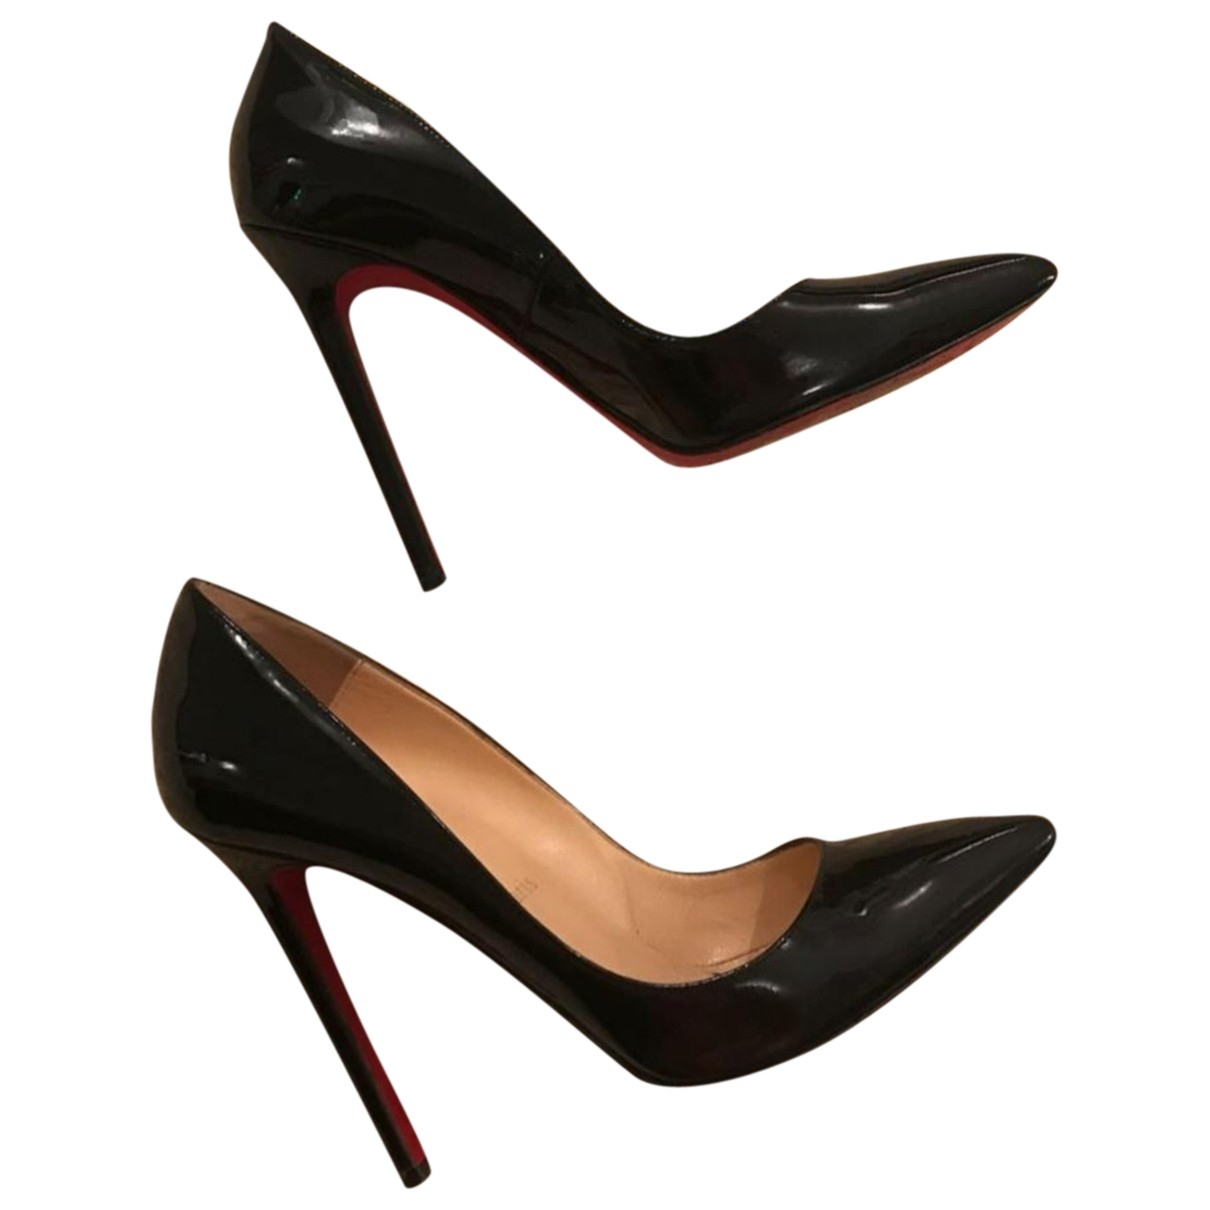 Christian Louboutin Pigalle Black Patent leather Heels for Women 36.5 EU